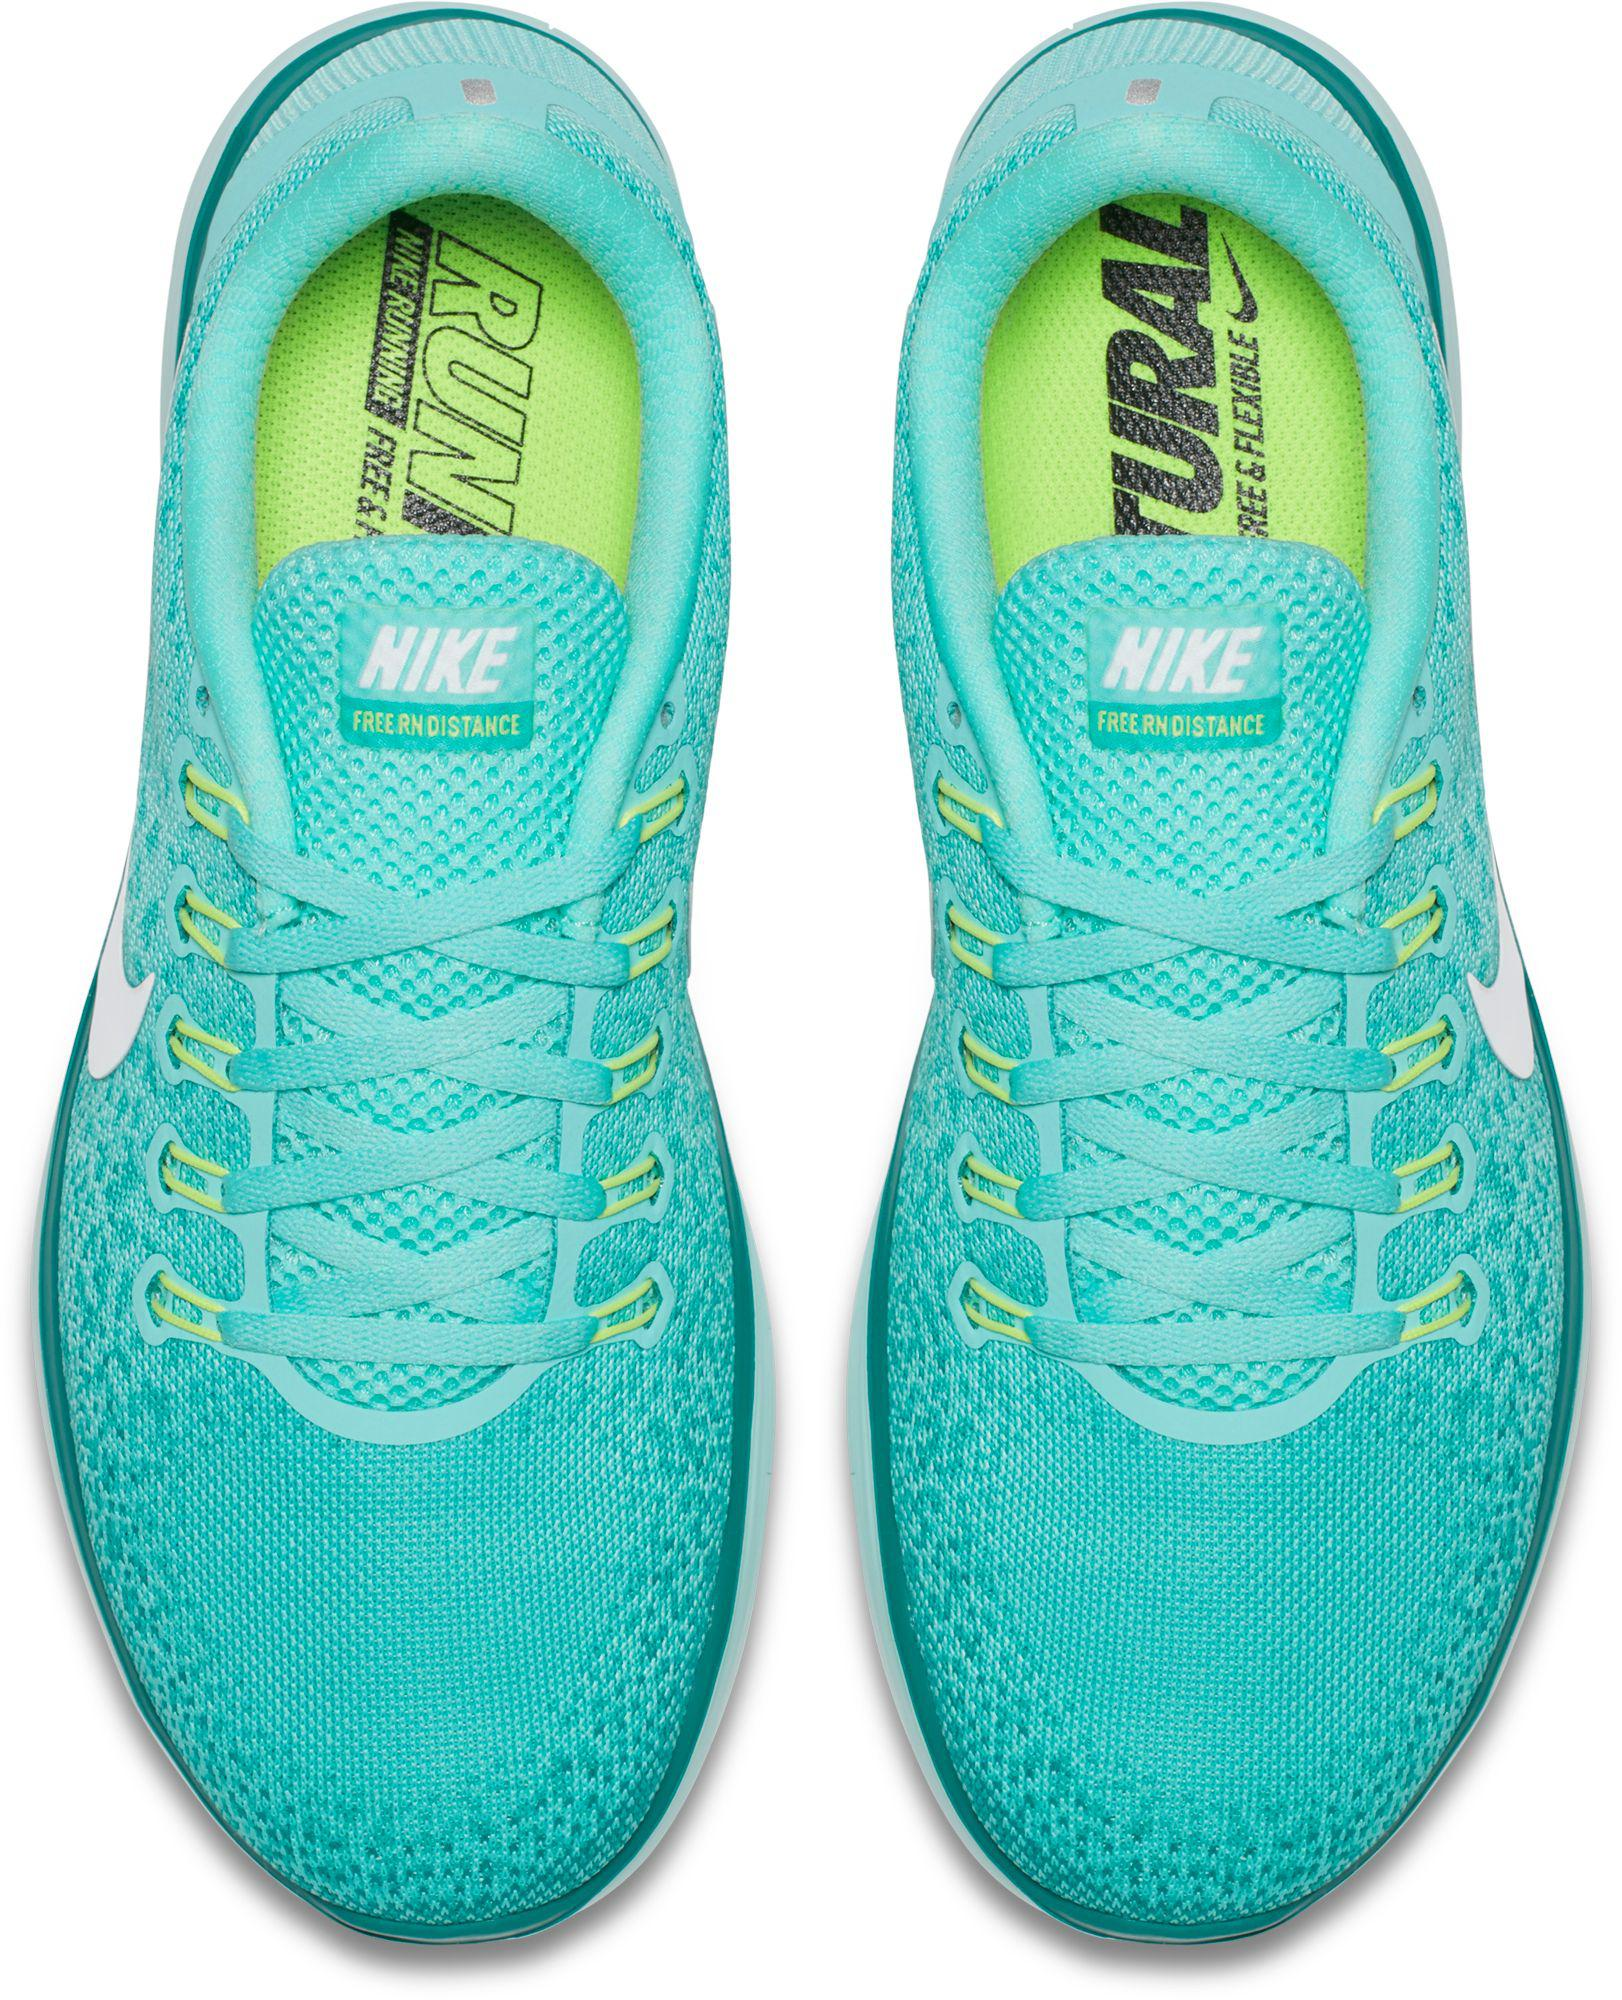 c10fb12220ac7 Lyst - Nike Free Distance Running Shoes in Green